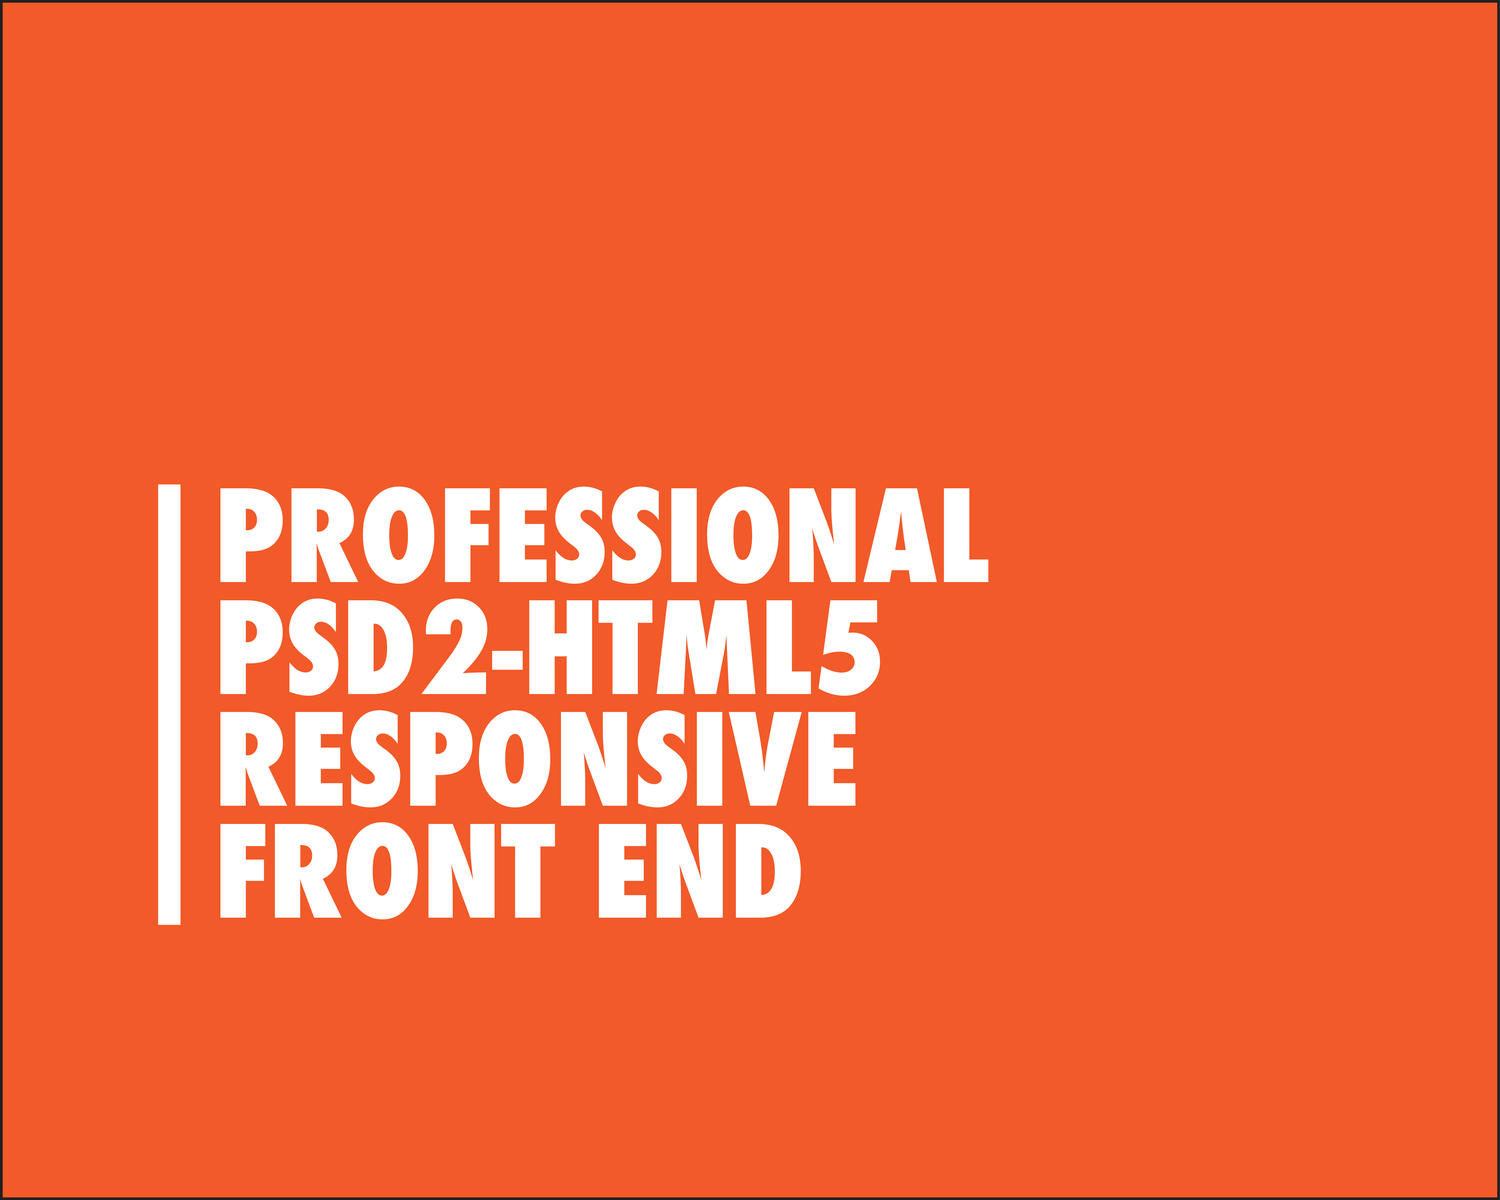 Professional PSD2HTML5 Responsive Front-end Development (Photoshop/Illustrator to HTML5/CSS3) by eDesignsCompany - 97262